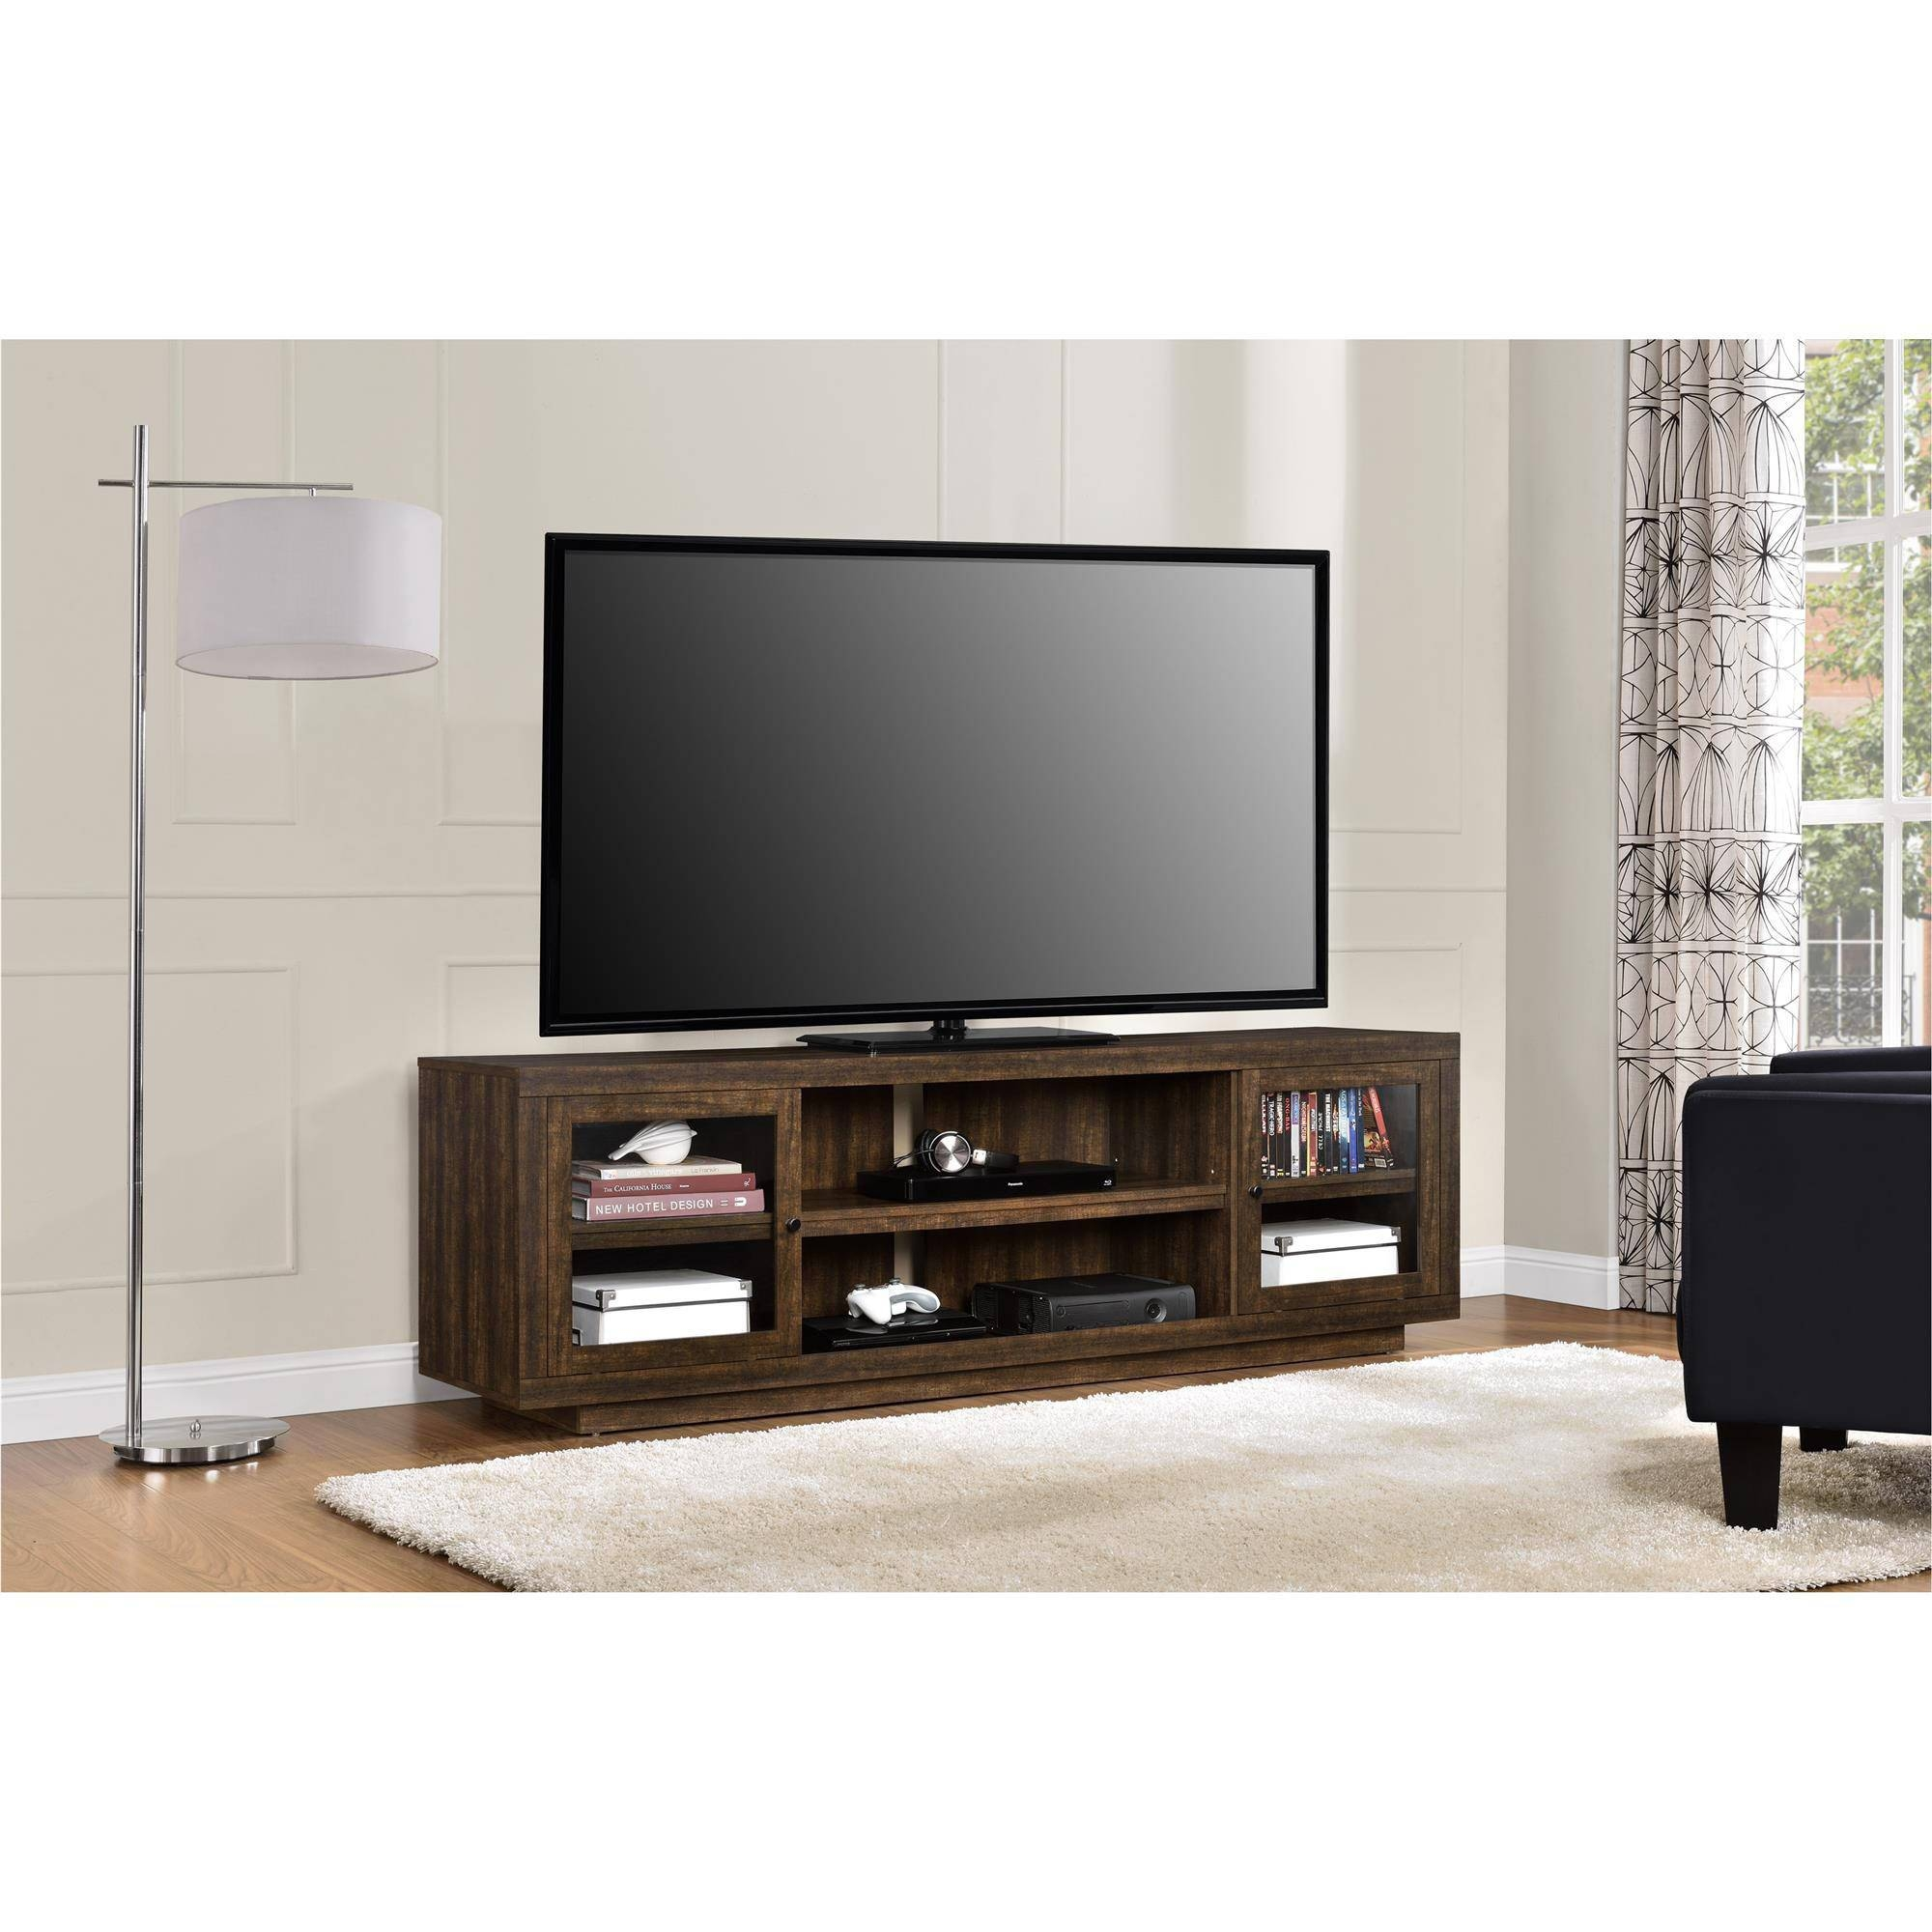 """Mainstays Tv Stand For Flat Screen Tvs Up To 47"""", Multiple Finish Inside Como Tv Stands (View 7 of 15)"""